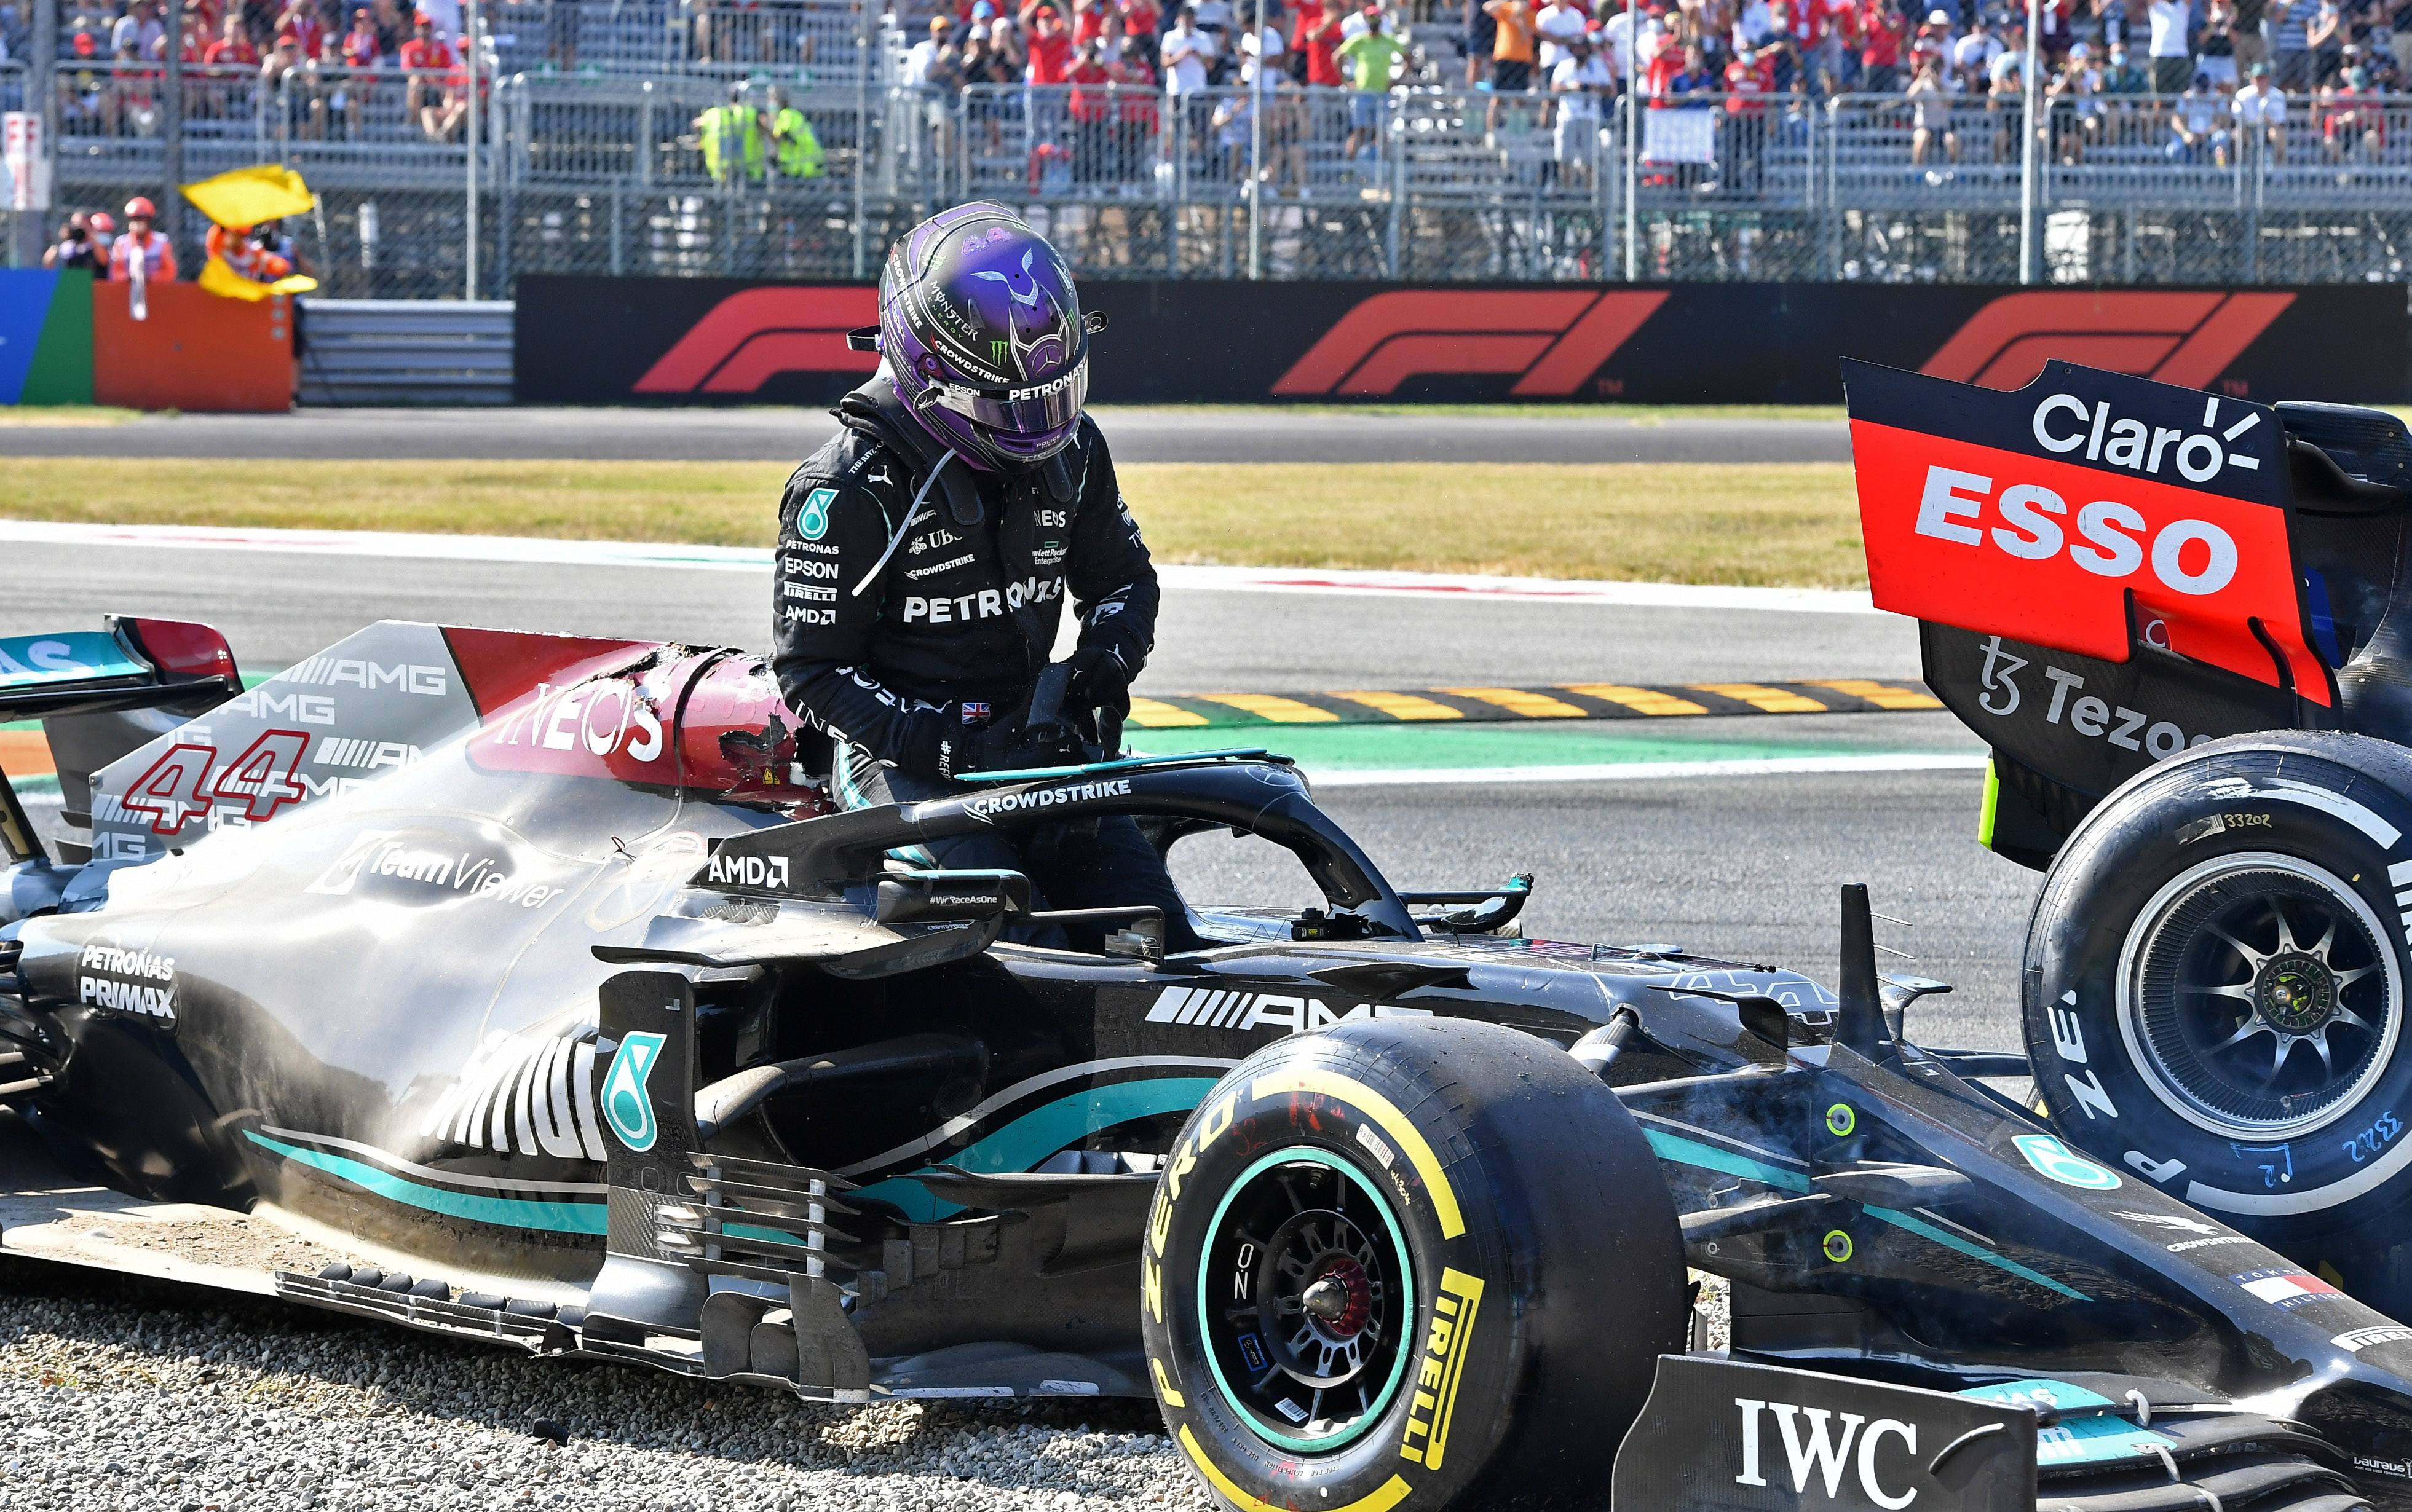 Formula One F1 - Italian Grand Prix - Autodromo Nazionale Monza, Monza, Italy - September 12, 2021 Mercedes' Lewis Hamilton after crashing out of the race with Red Bull's Max Verstappen REUTERS/Jennifer Lorenzini